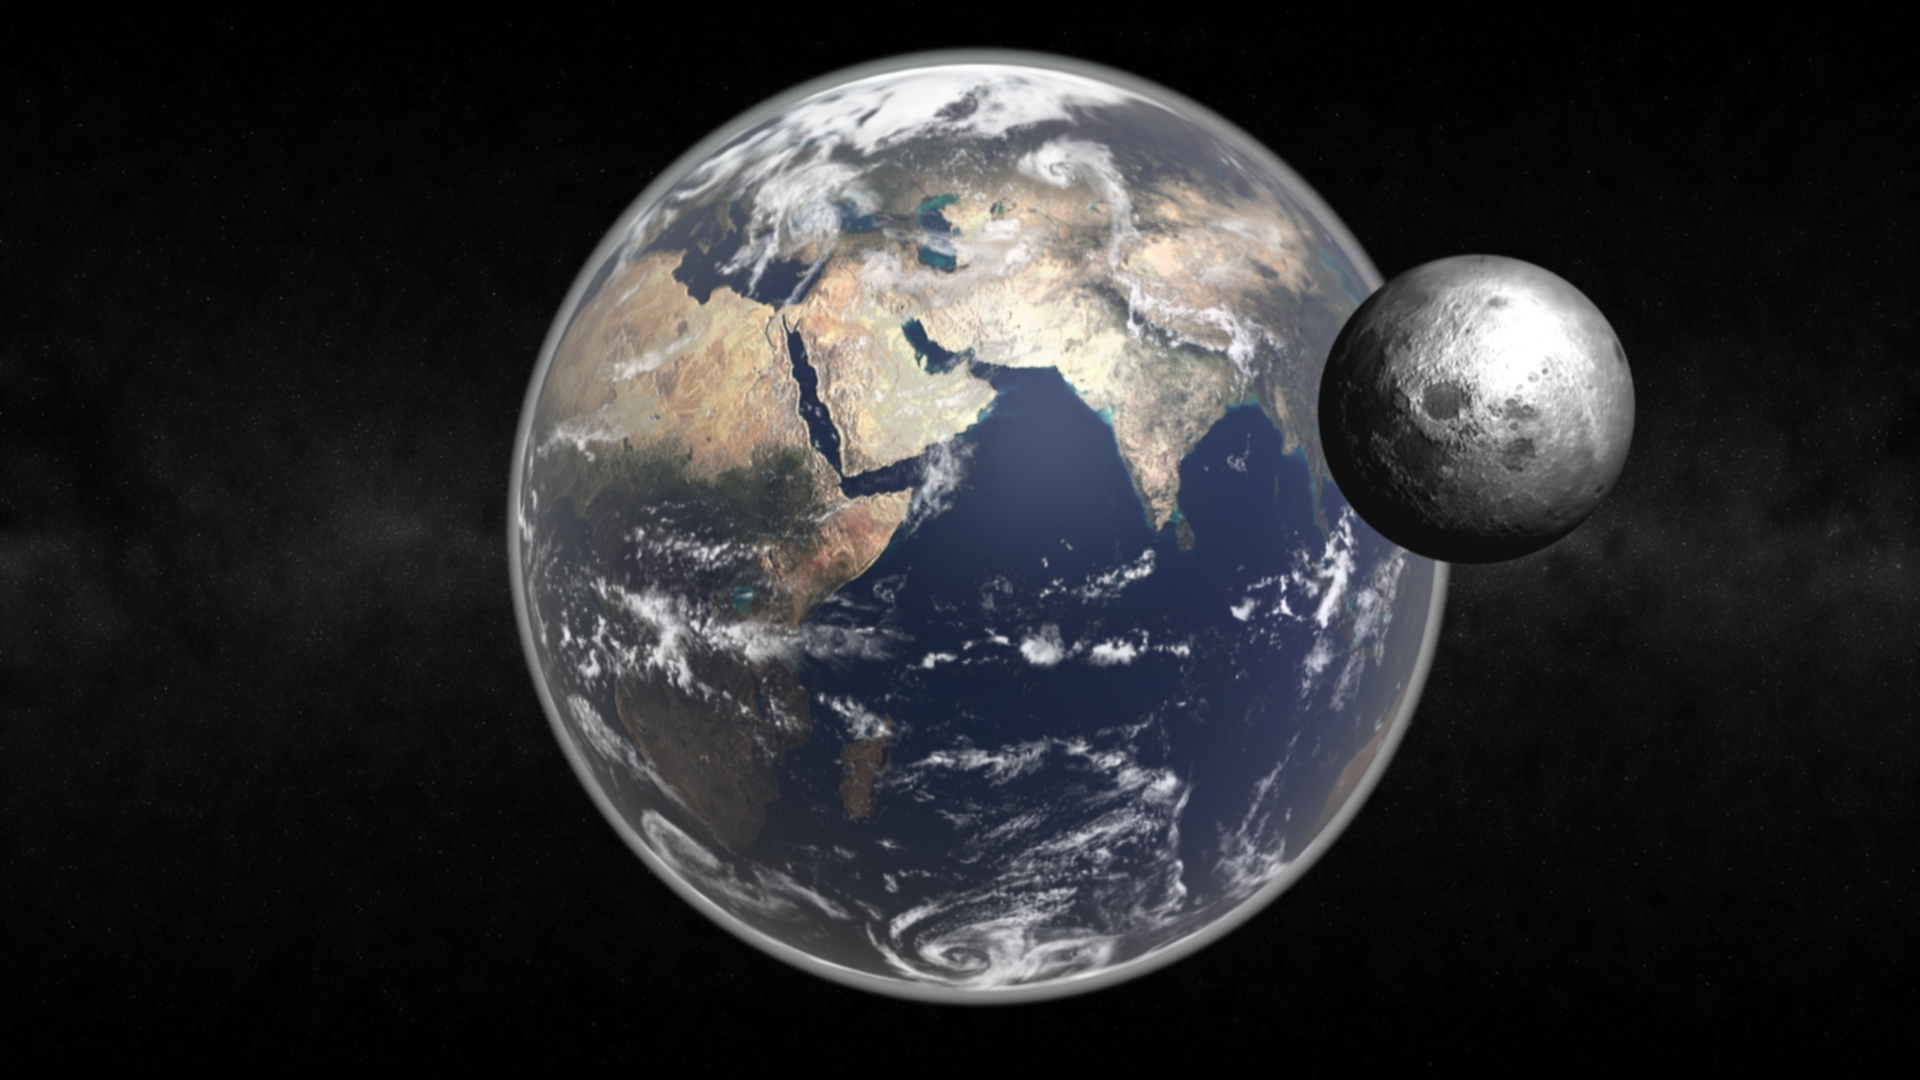 Earth of View from moon armstrong pictures images